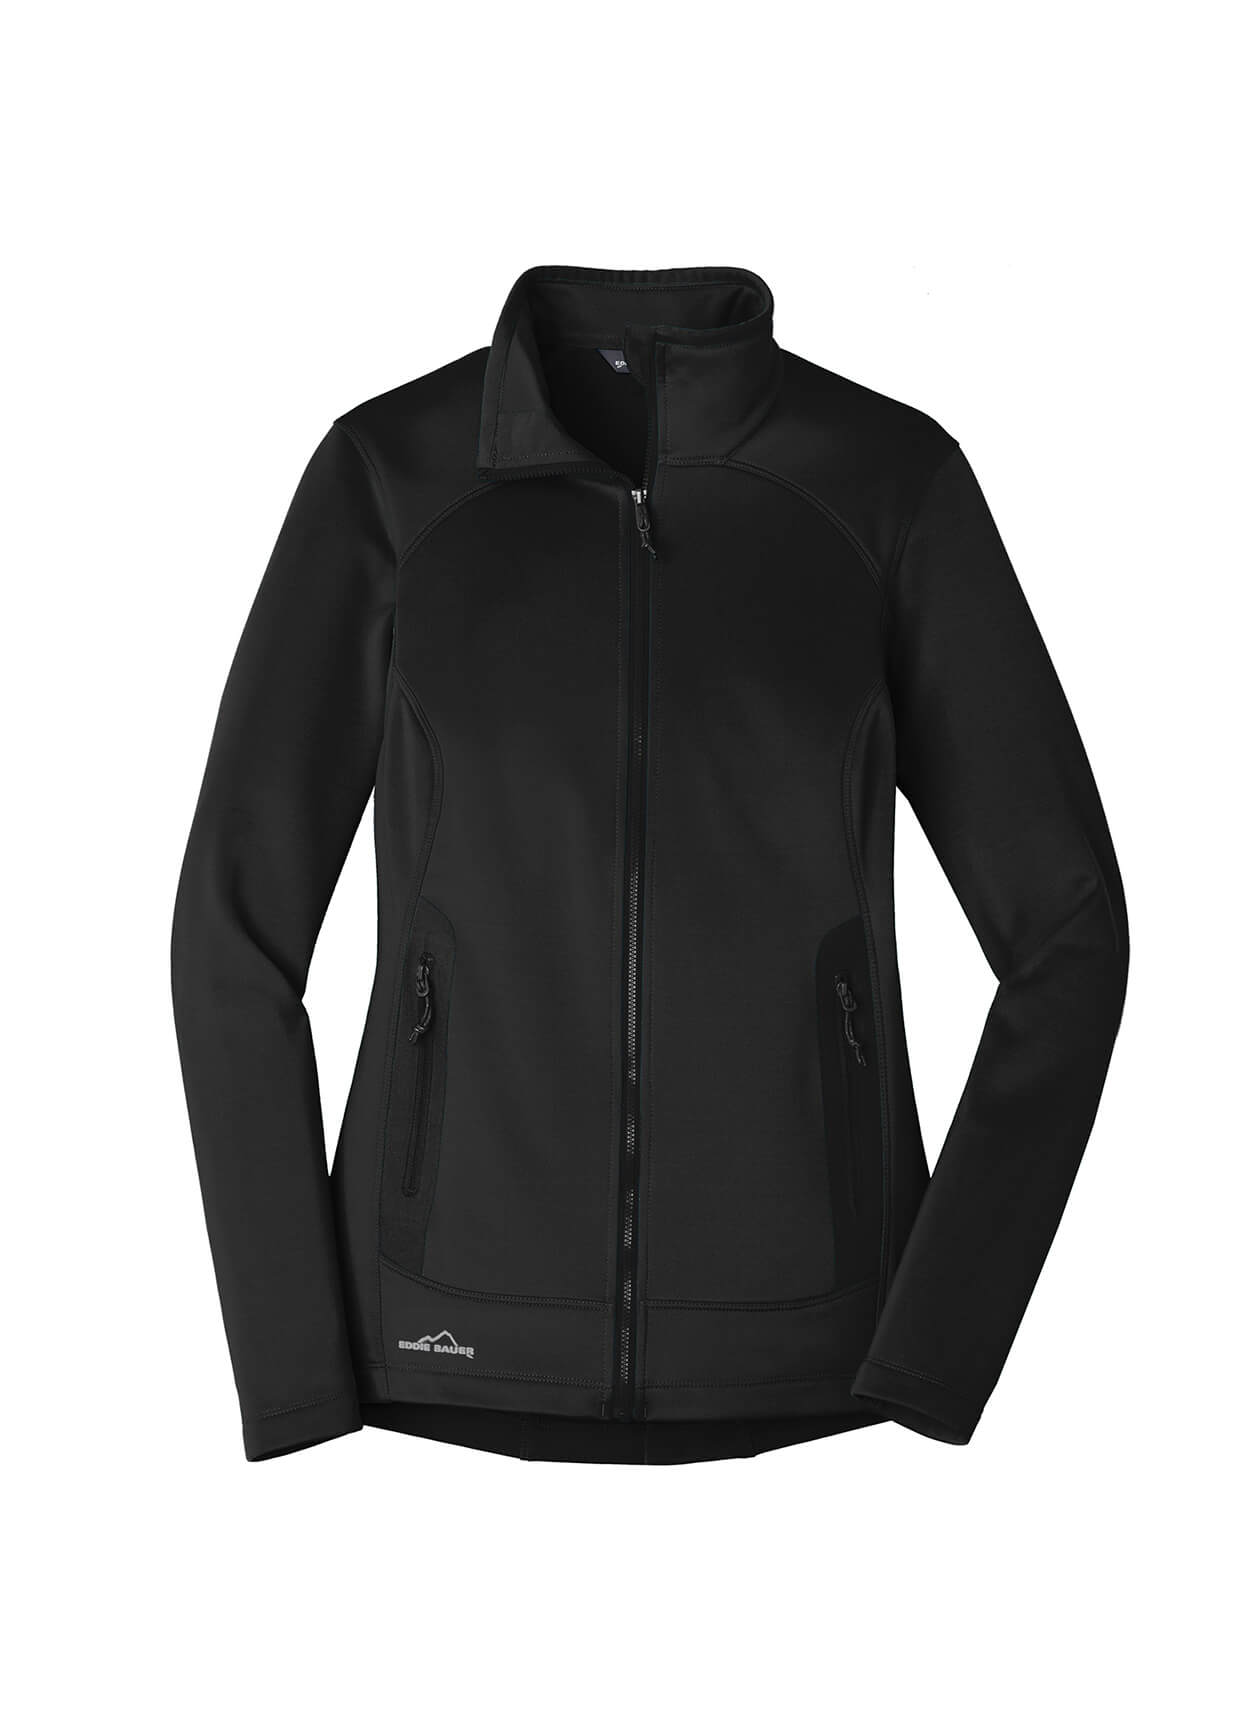 Eddie Bauer Women's Highpoint Fleece Jacket